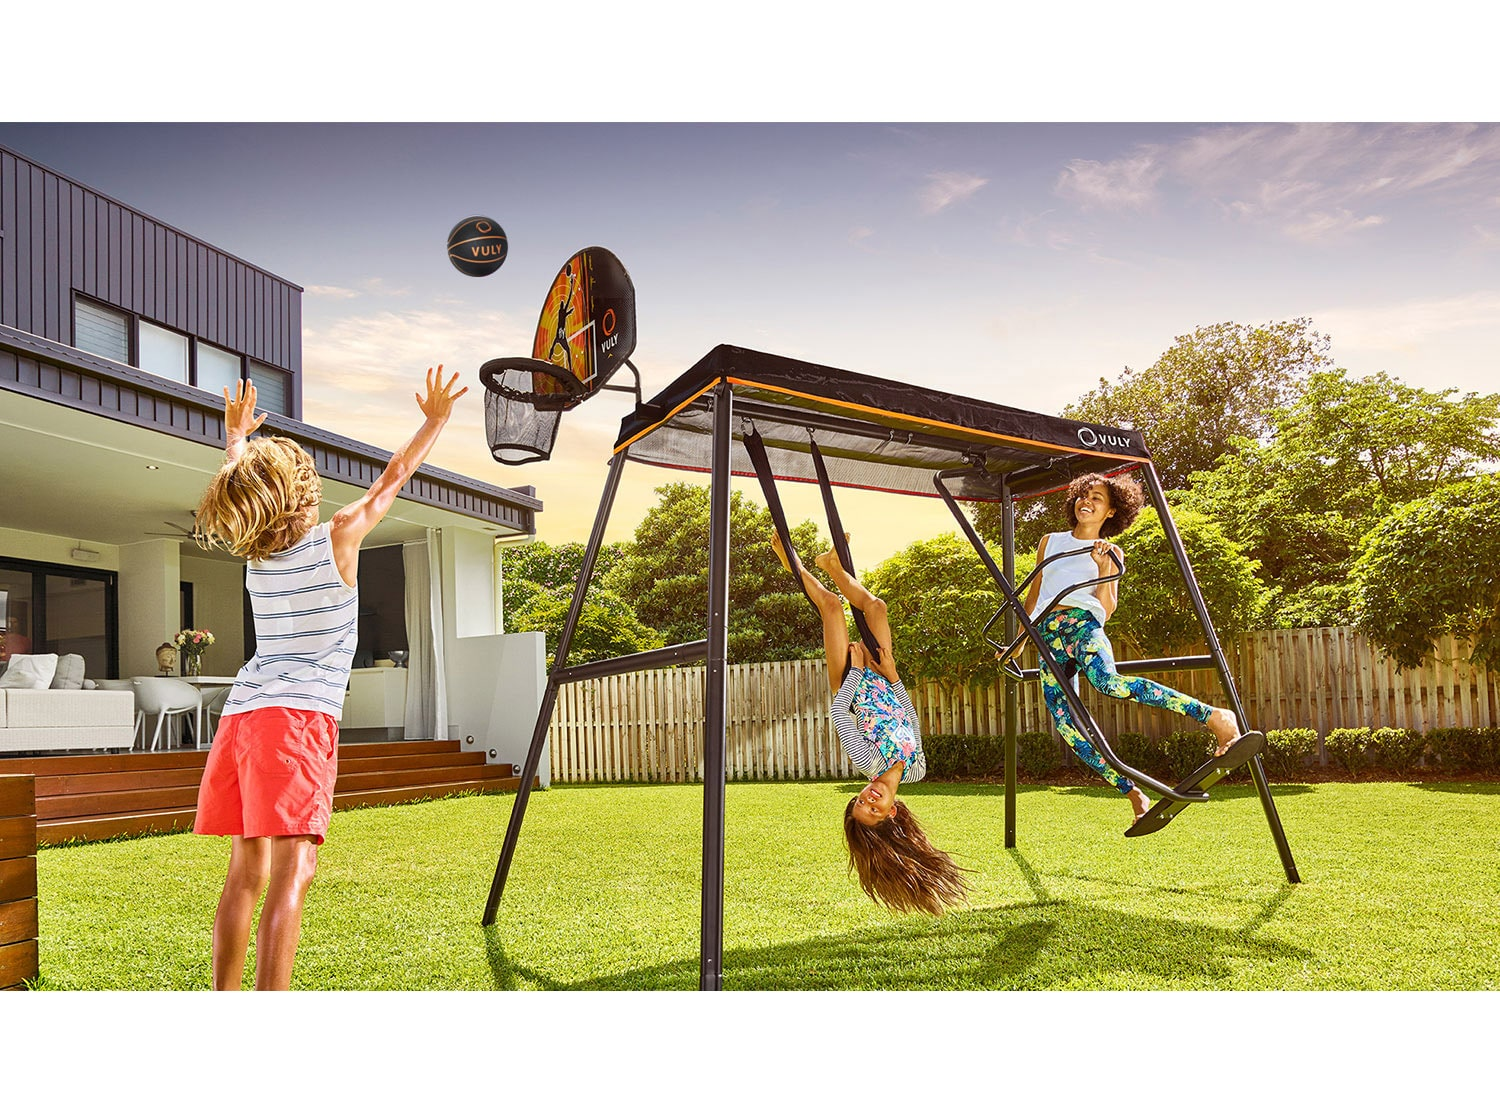 Attach a Basketball Set, Mister or Pulse to your 360 swing set, and enjoy them in a new way.